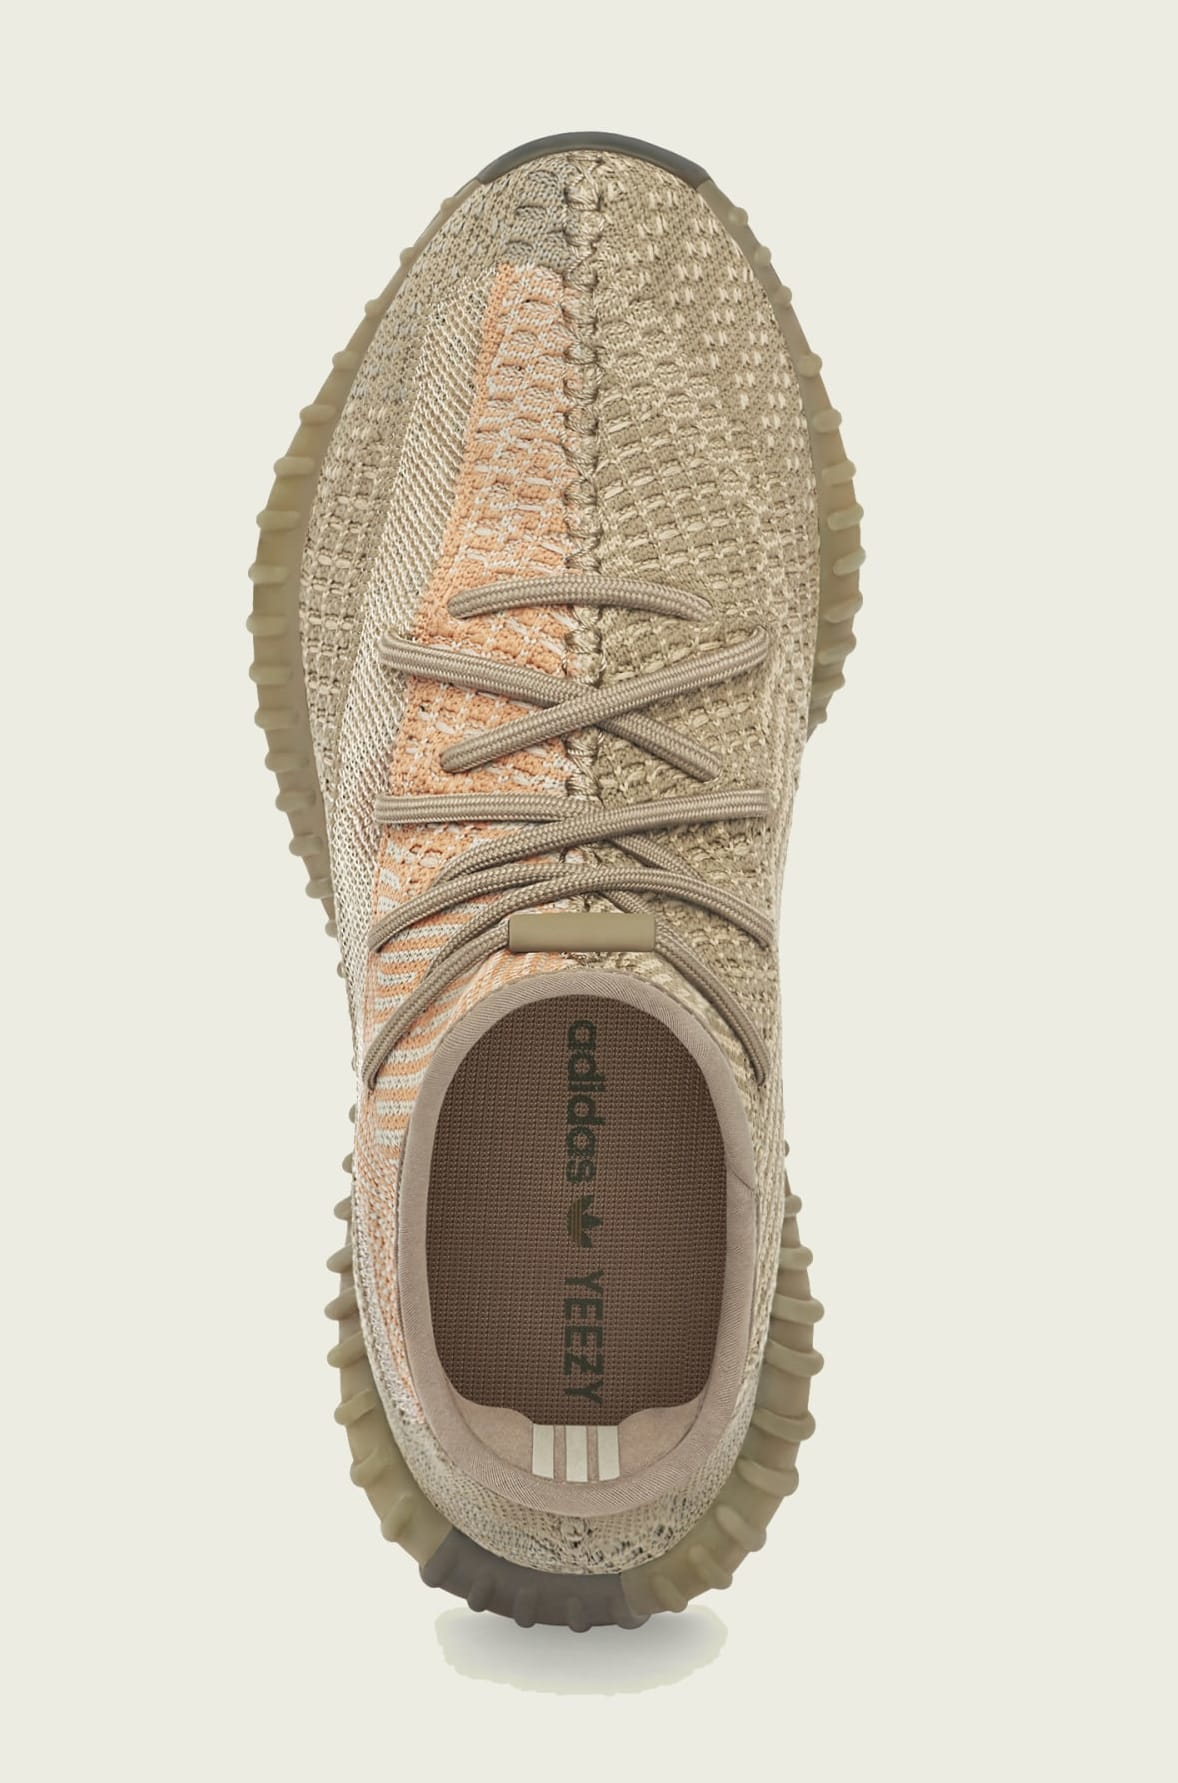 Adidas Yeezy Boost 350 V2 'Sand Taupe' FZ5240 Top